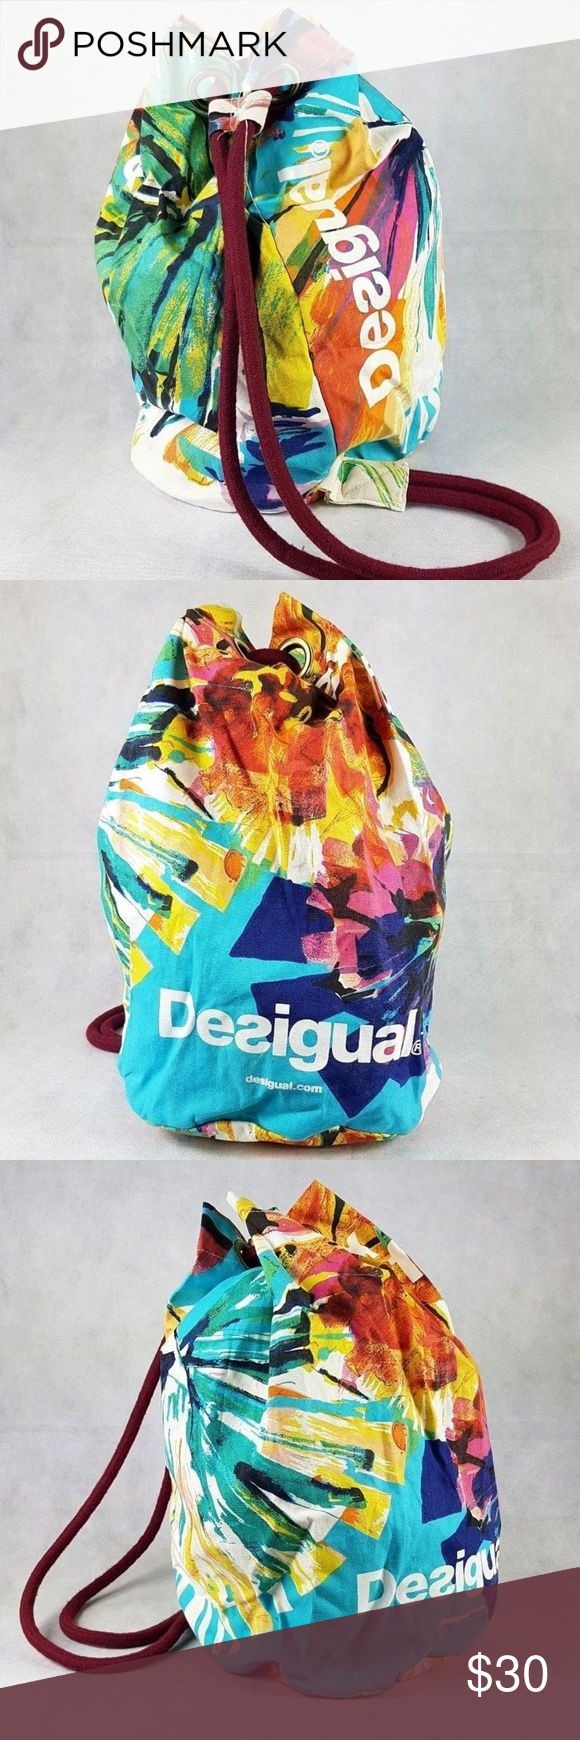 """[Desigual] large beach tote rucksack backpack bag [Desigual] large beach tote rucksack backpack bag. Excellent condition. Used once only. it will fit your beach towel, your sunscreen, your water bottle, your snacks and more. Beautiful typical Desigual abstract print. Vibrant colors. Drawstring is thick, which makes the bag durable and easy to carry even if it full with heavy items. Bag height about 19"""". Bottom width about 12"""". 100% Cotton material Desigual Bags Backpacks"""